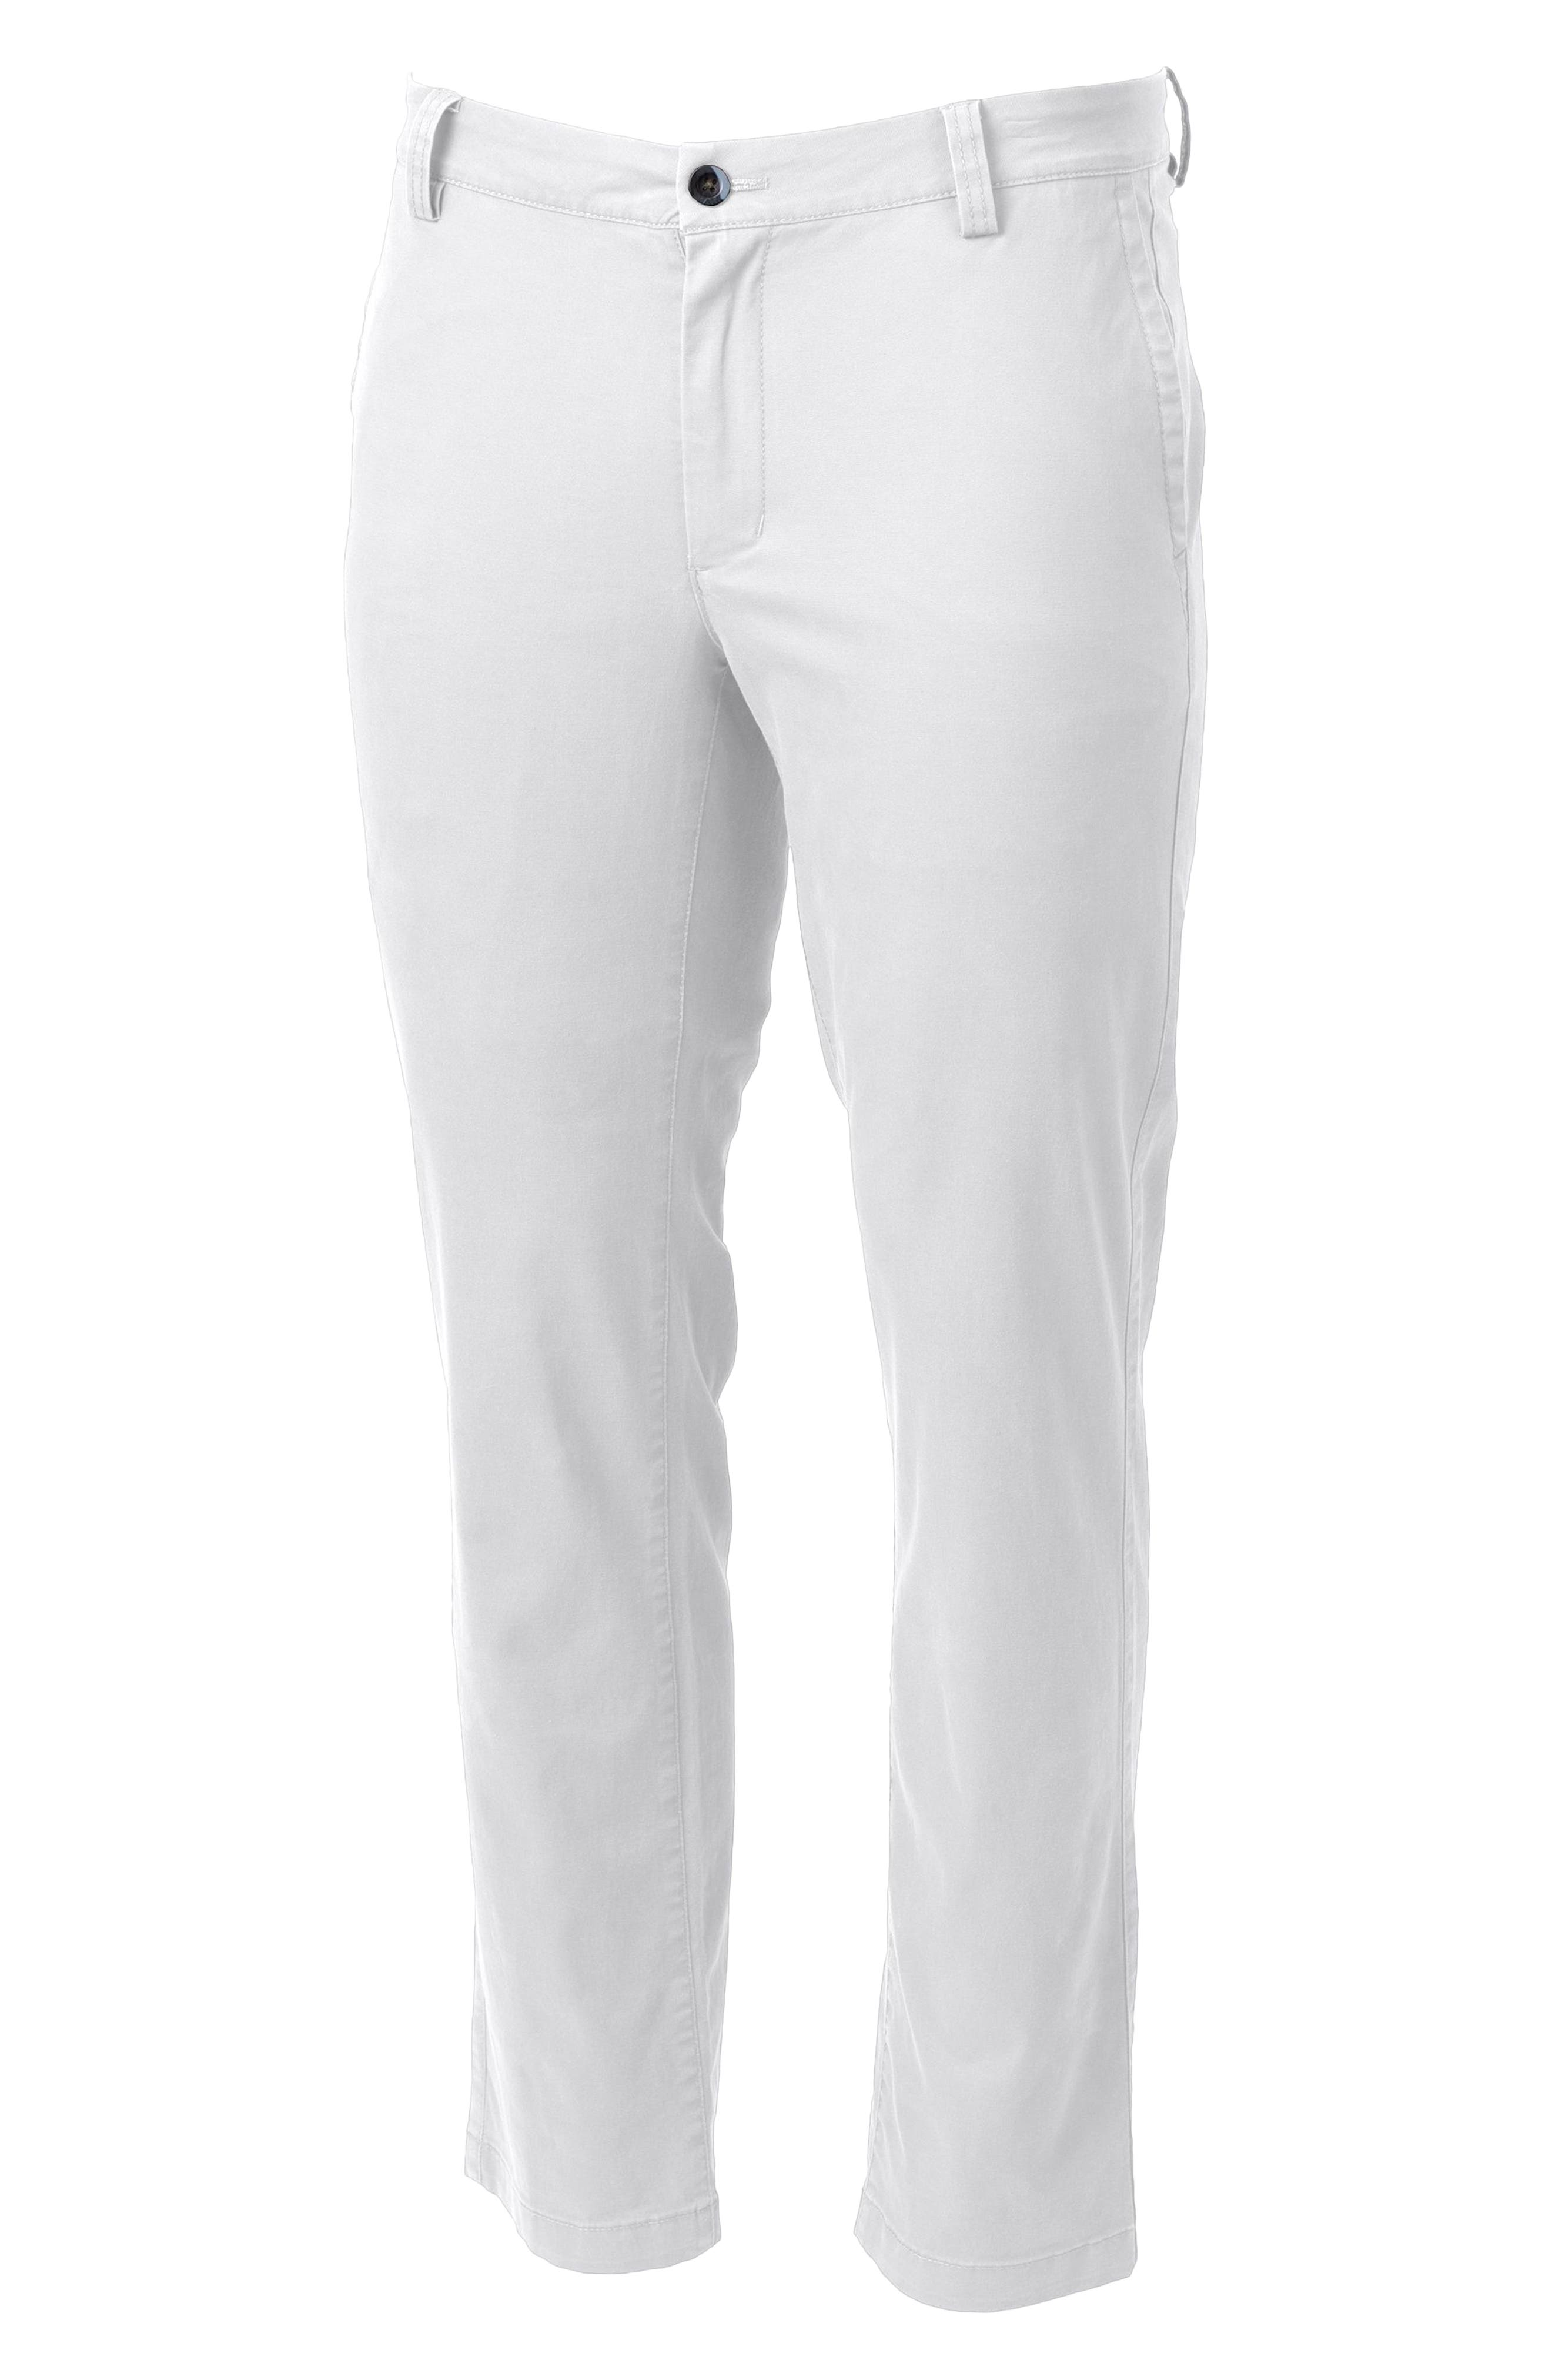 Take a break from blue jeans in these handsome flat-front pants cut from stretch cotton with a traditional straight-leg profile for comfortable, all-day wear. Style Name: Cutter & Buck Voyager Classic Fit Stretch Cotton Chinos. Style Number: 5919826. Available in stores.